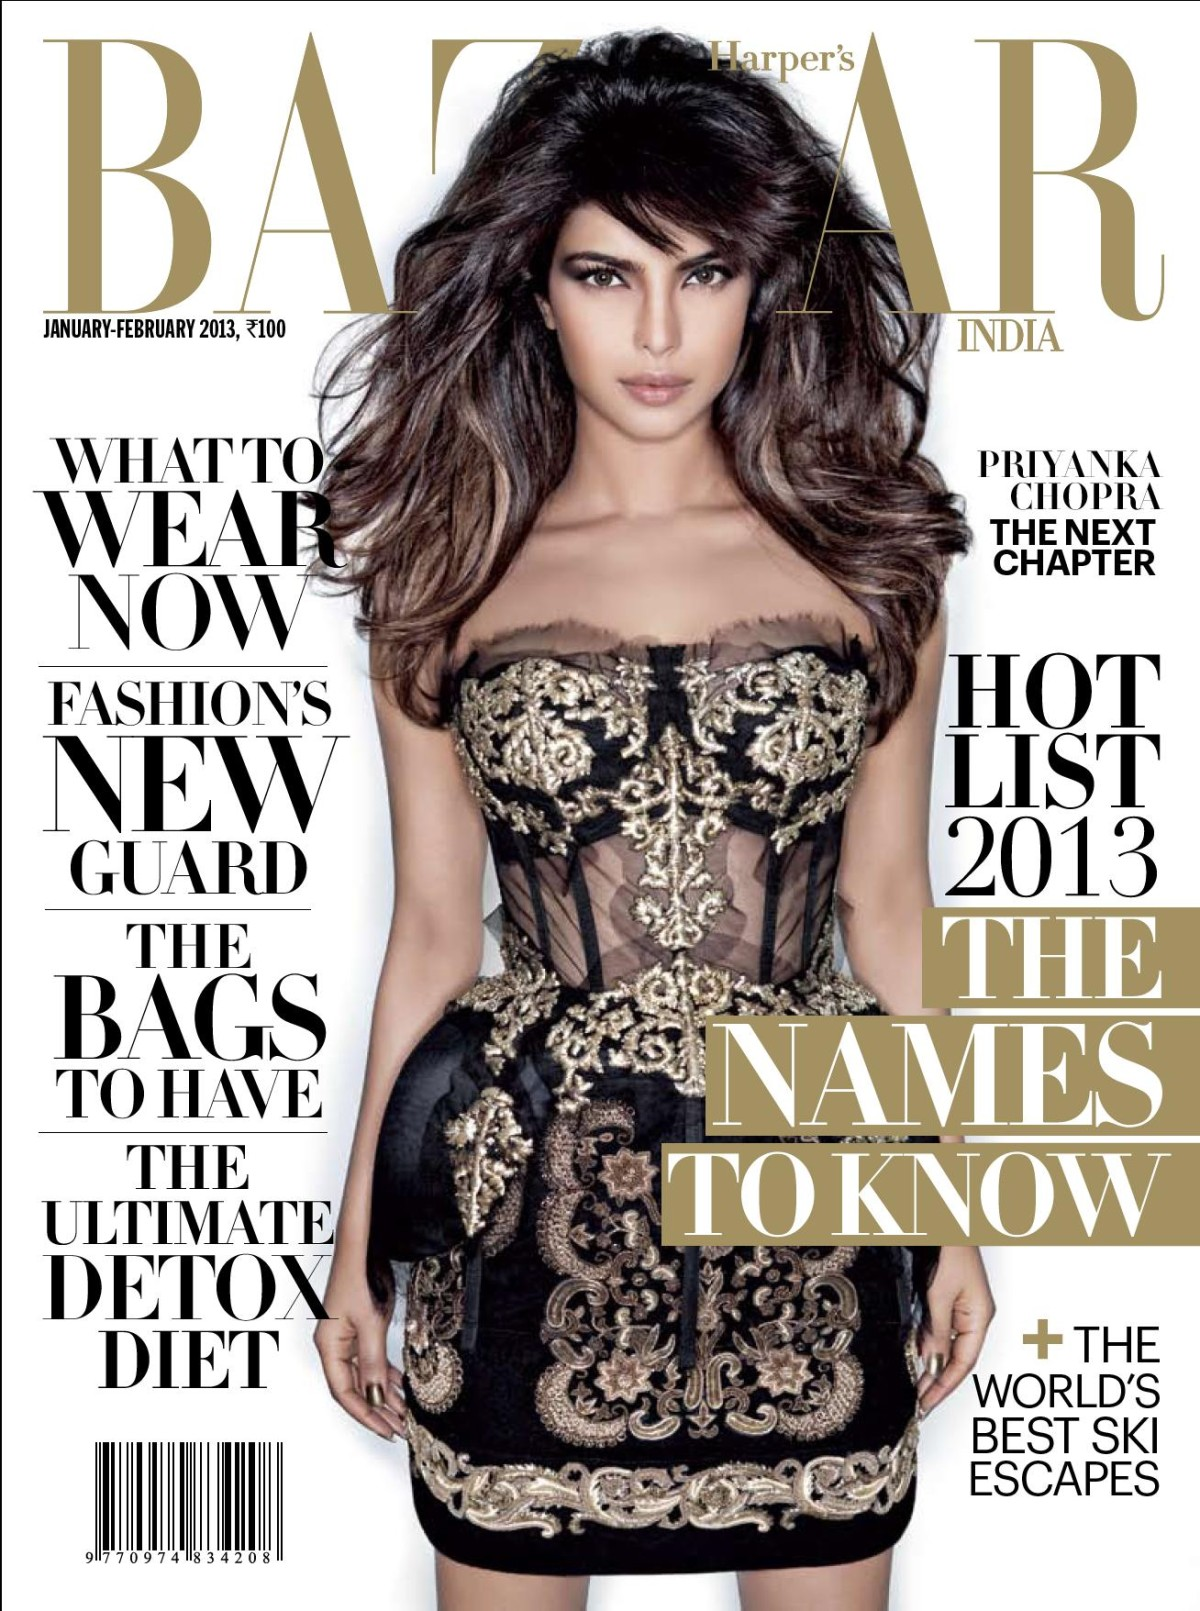 Priyanka Chopra on Harpers BAZAAR Jan Feb 2013 Cover 1200x1611